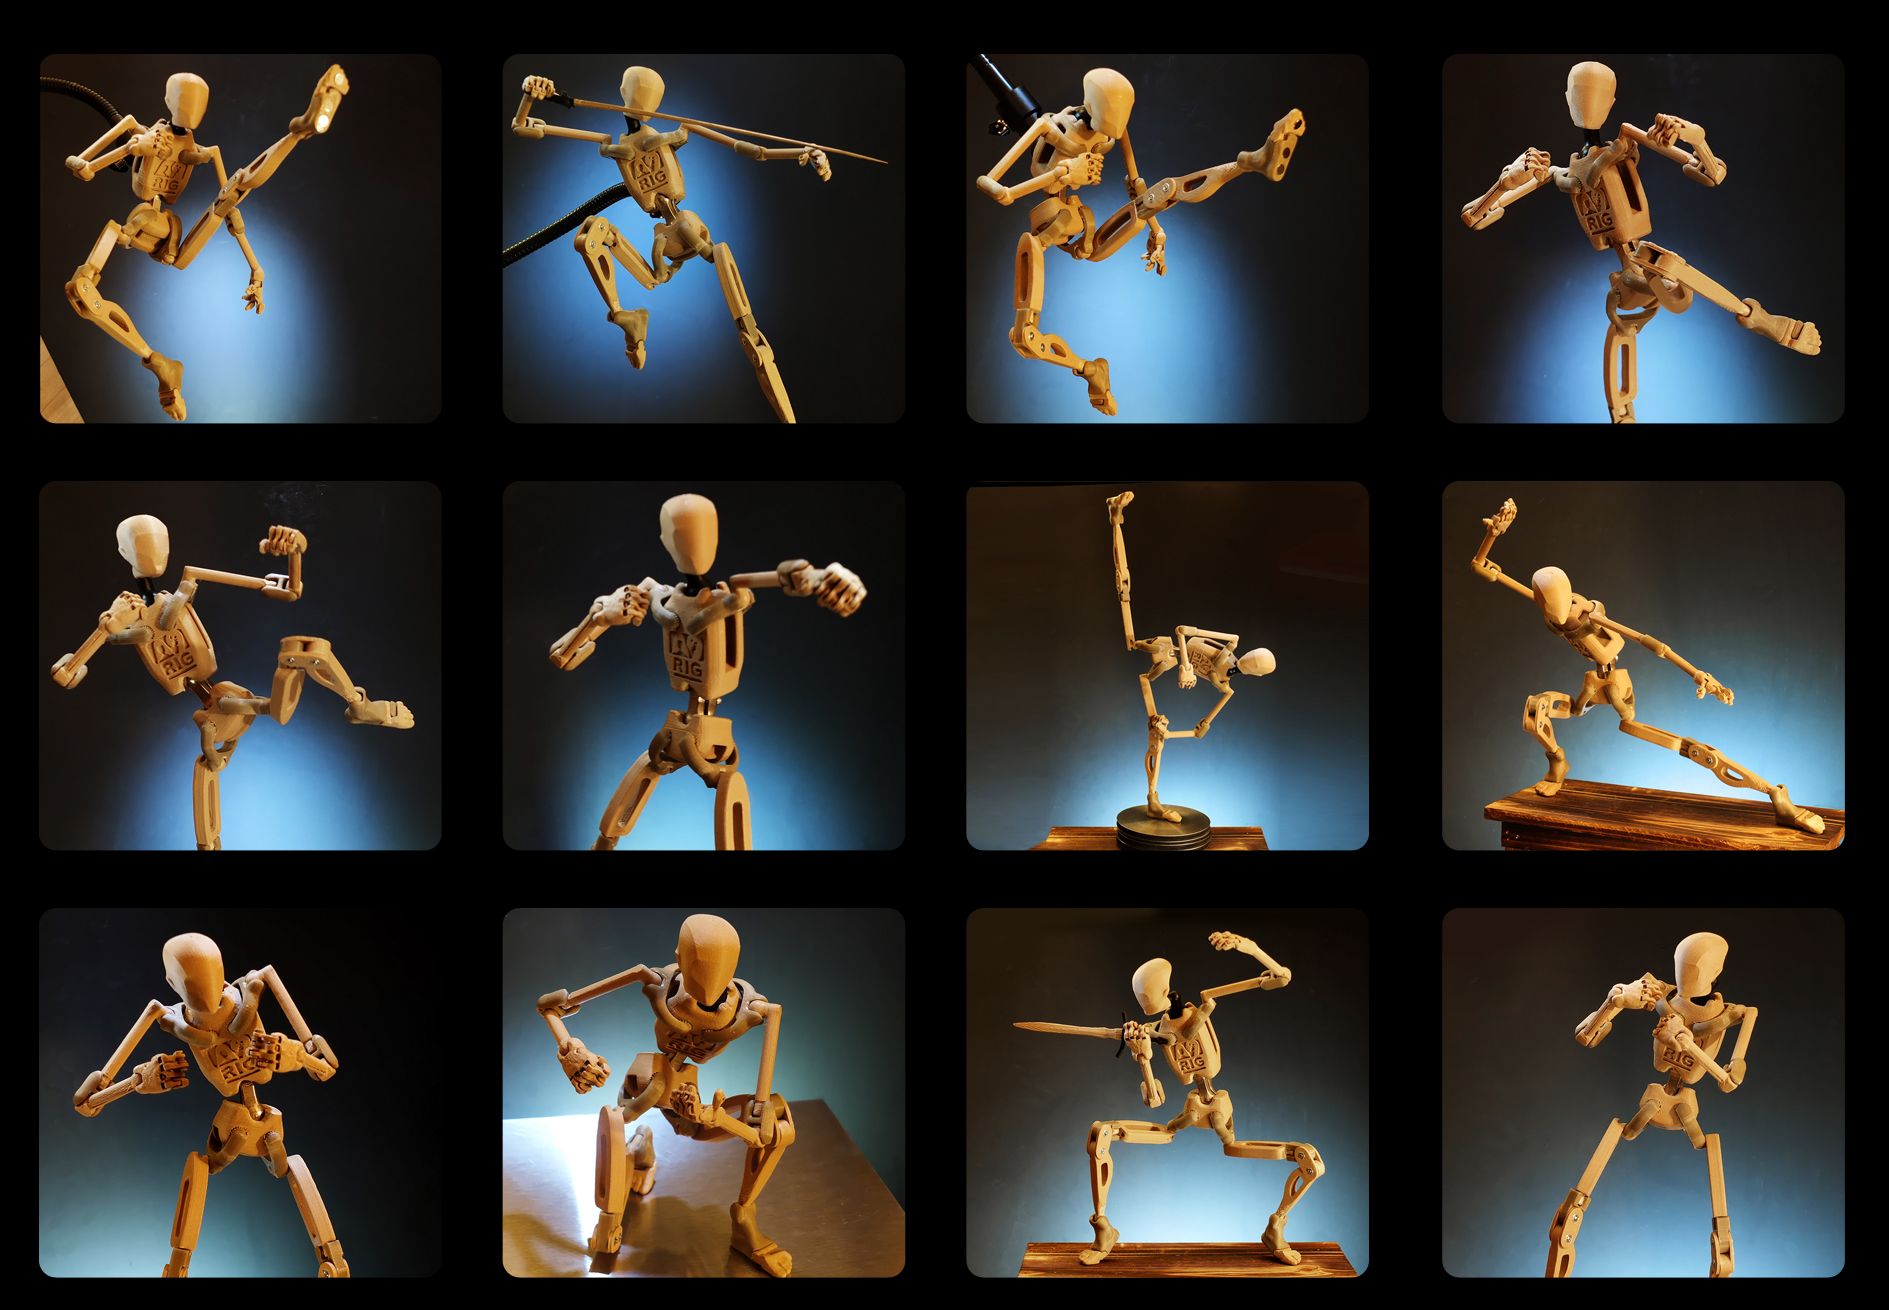 Armature Nine Combat Poses